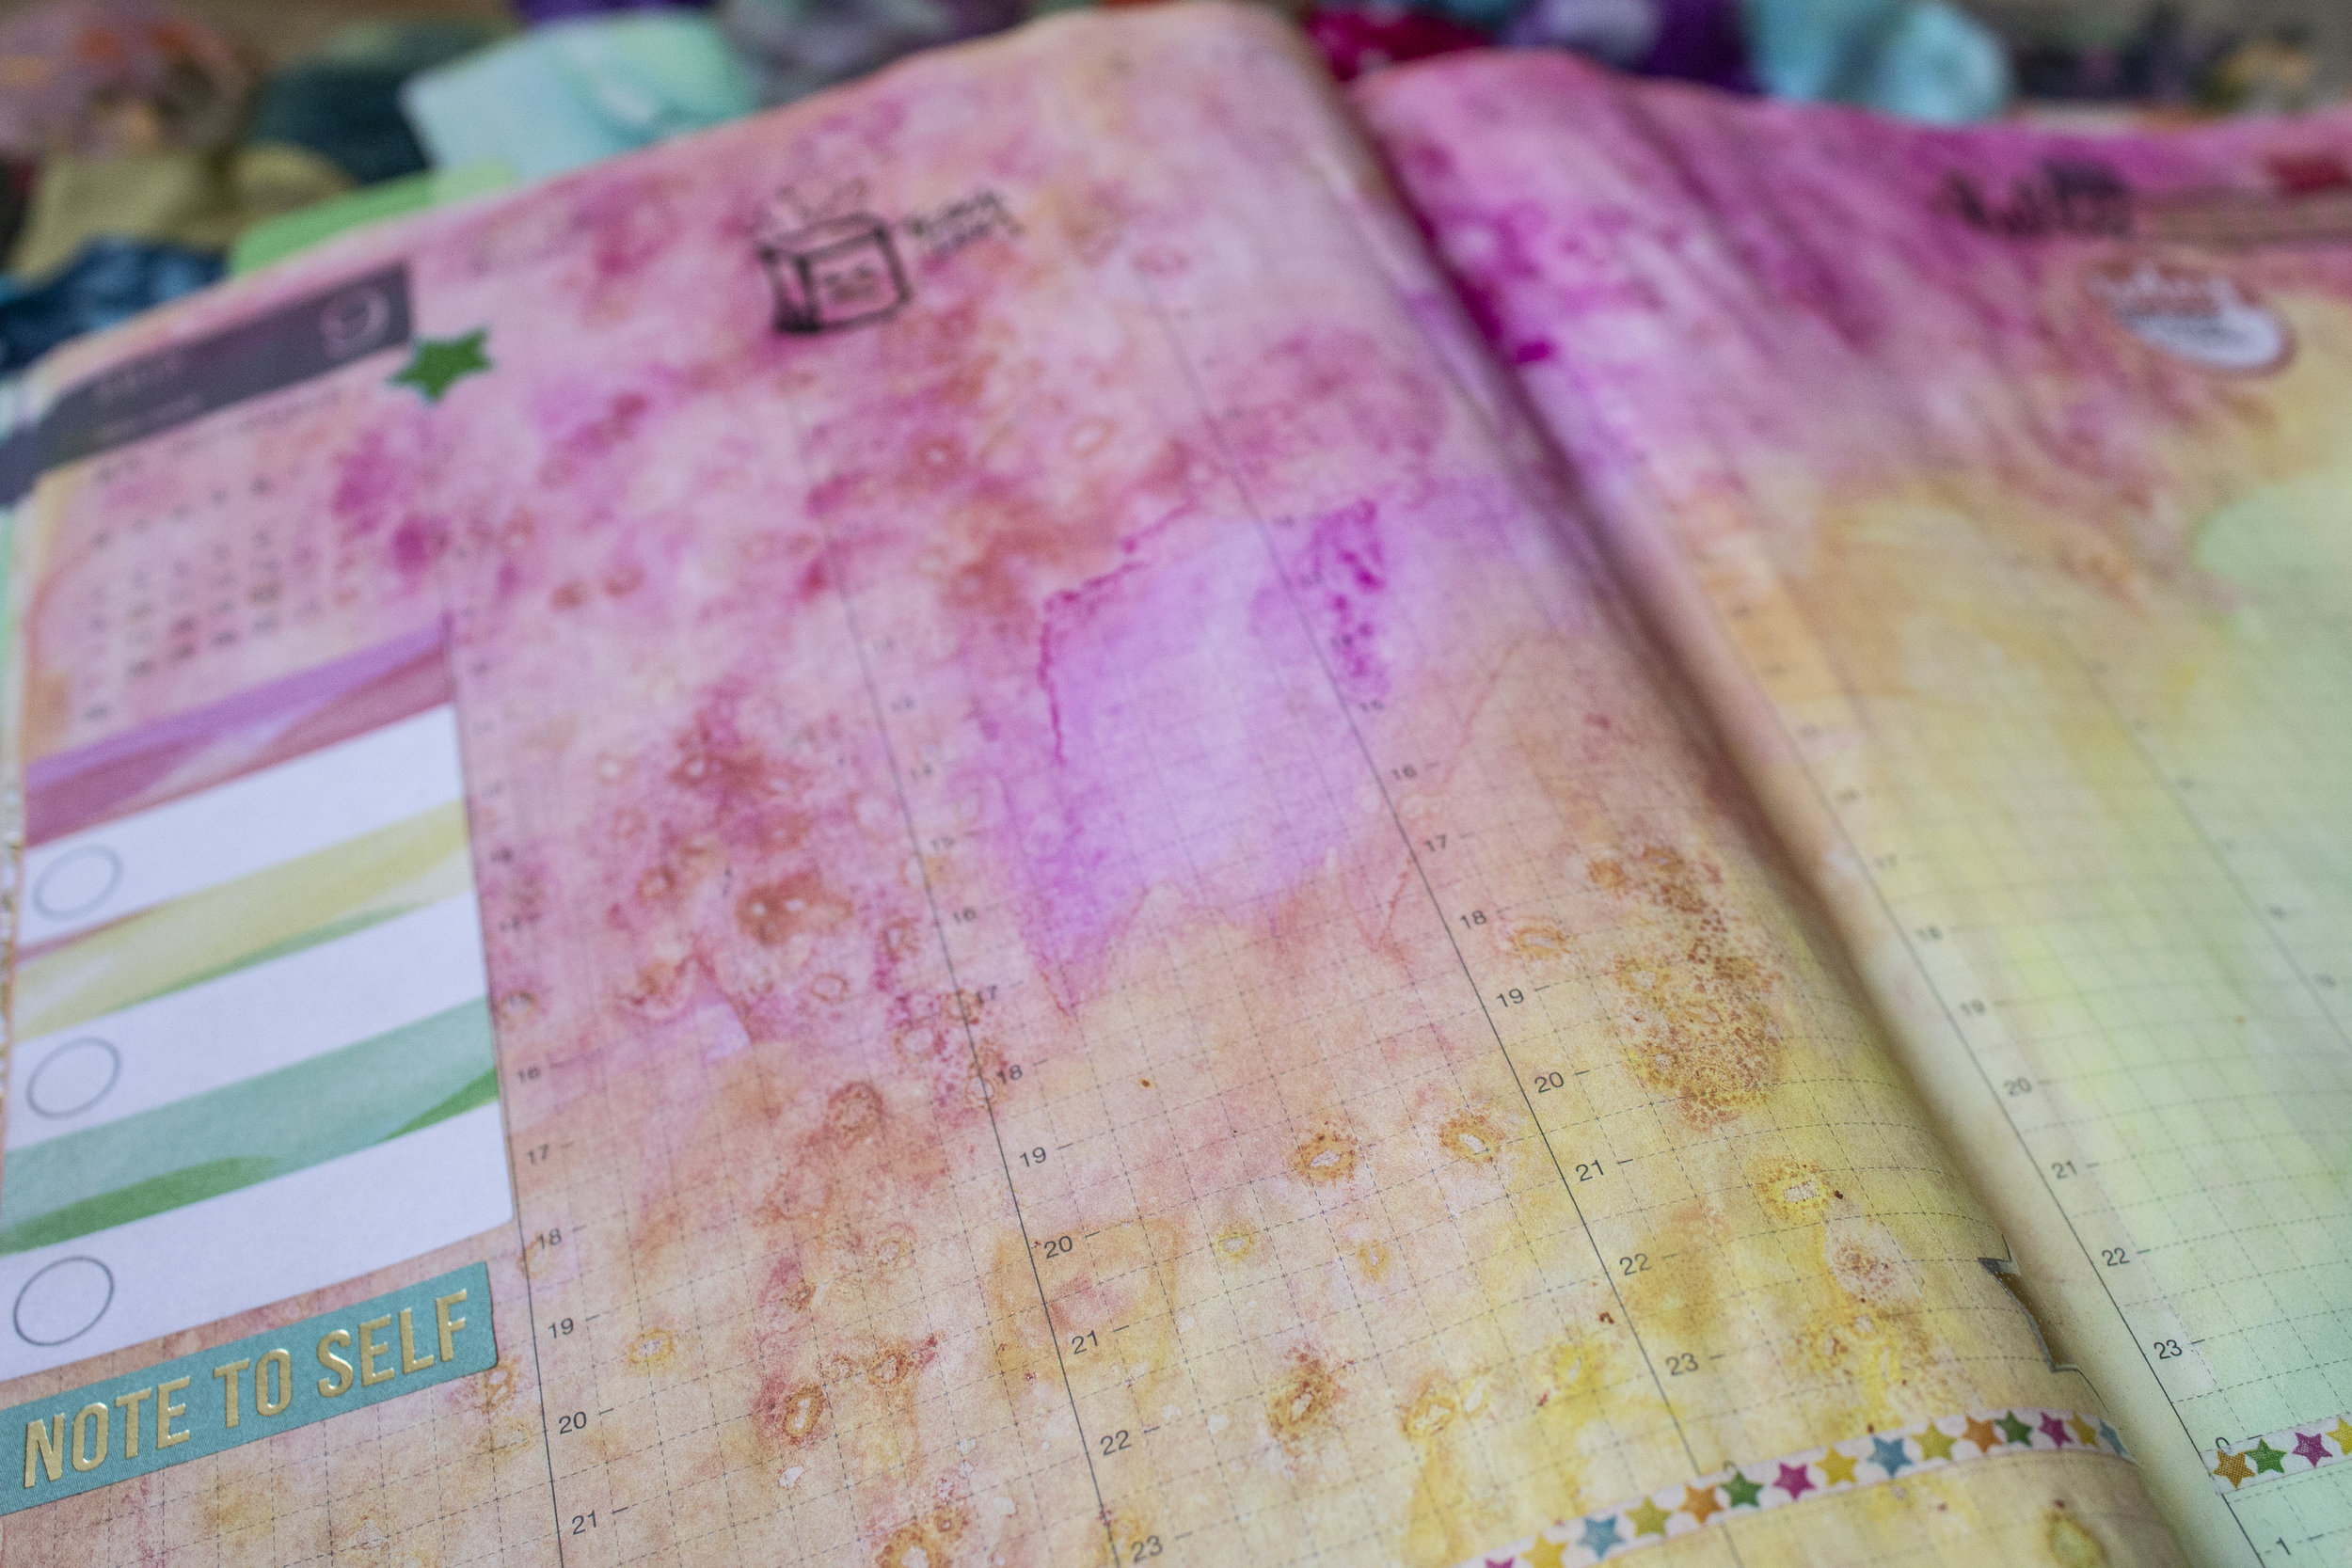 """This is what people in the planner world call """"before the pen"""" - trust me, all these pages are filled. I just don't want to share that on here, lol. I do love to make colorful backgrounds and add stickers before I start filling it out and doodling."""